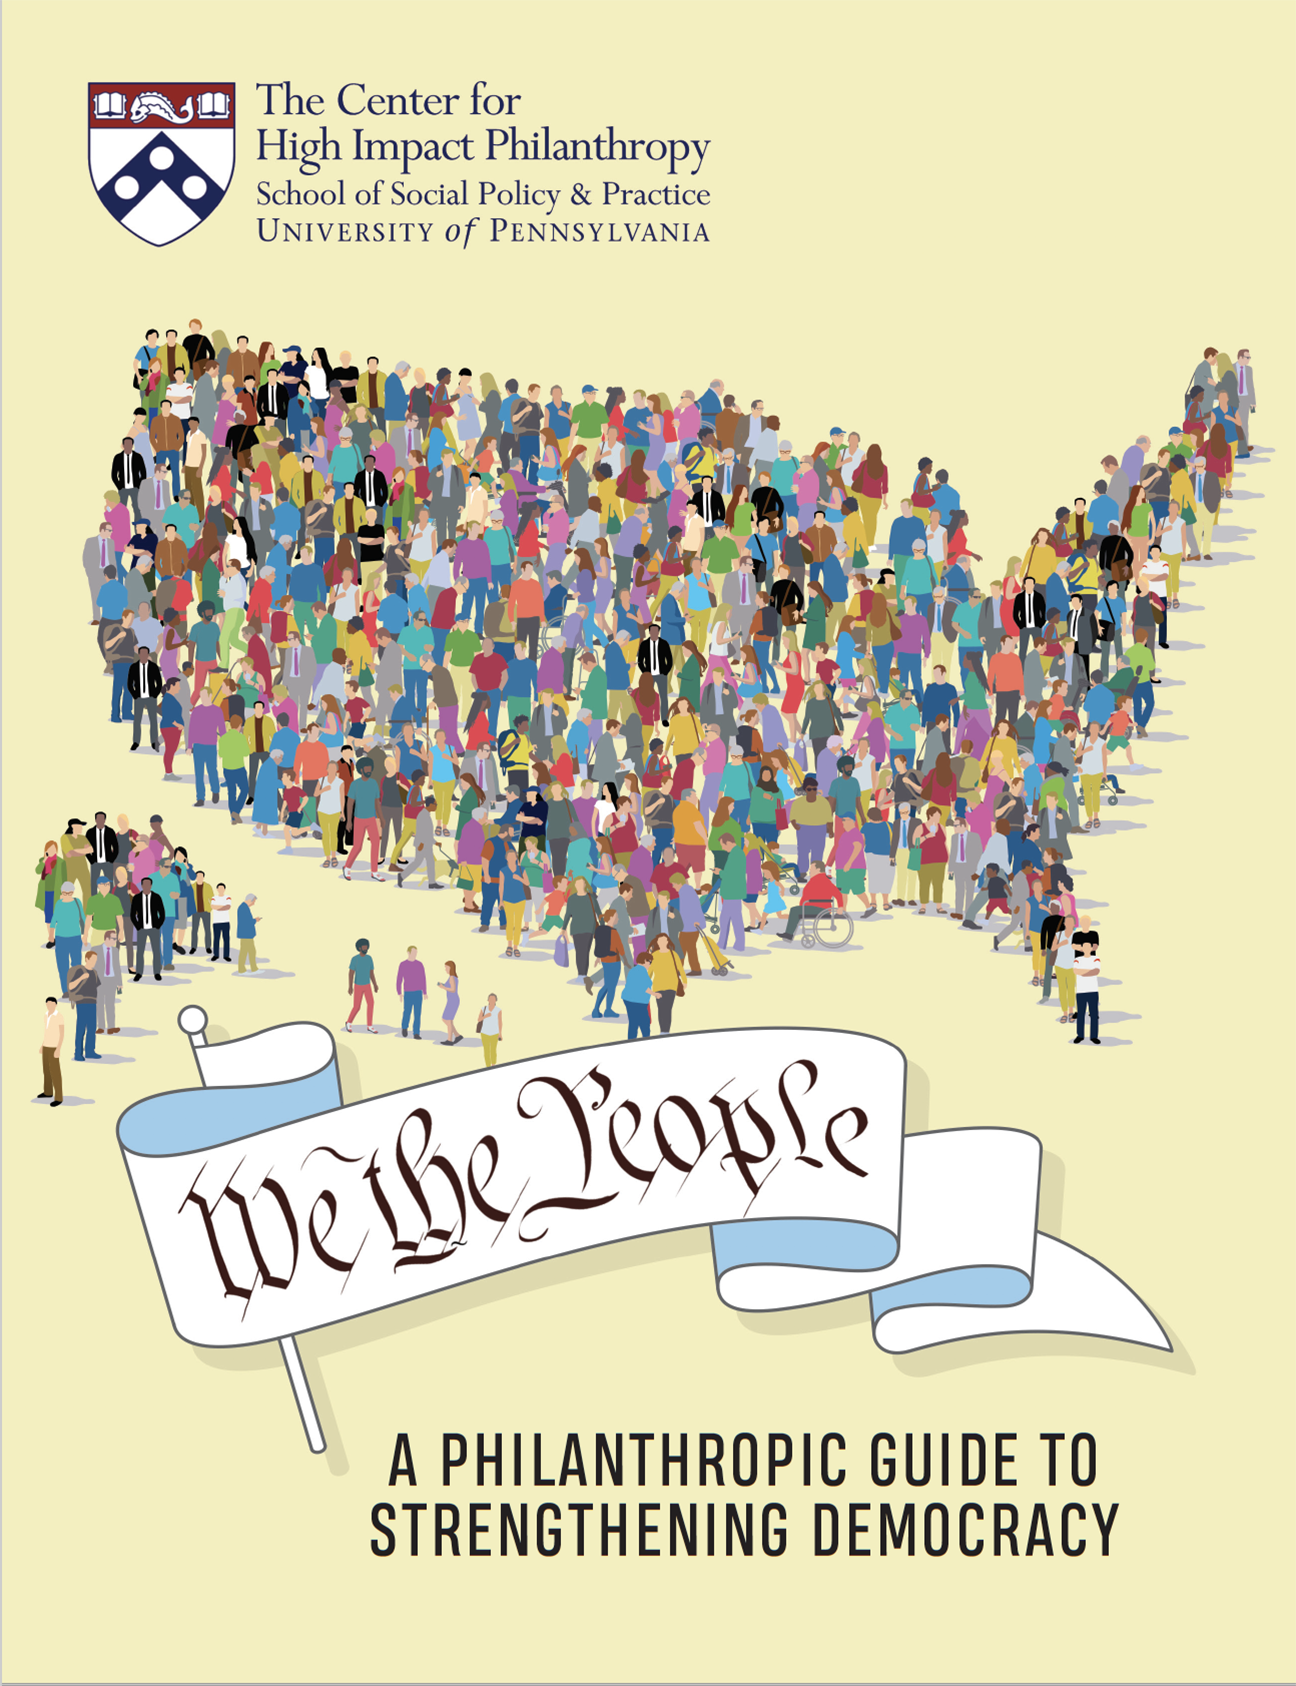 We the People: A Philanthropic Guide to Strengthening Democracy